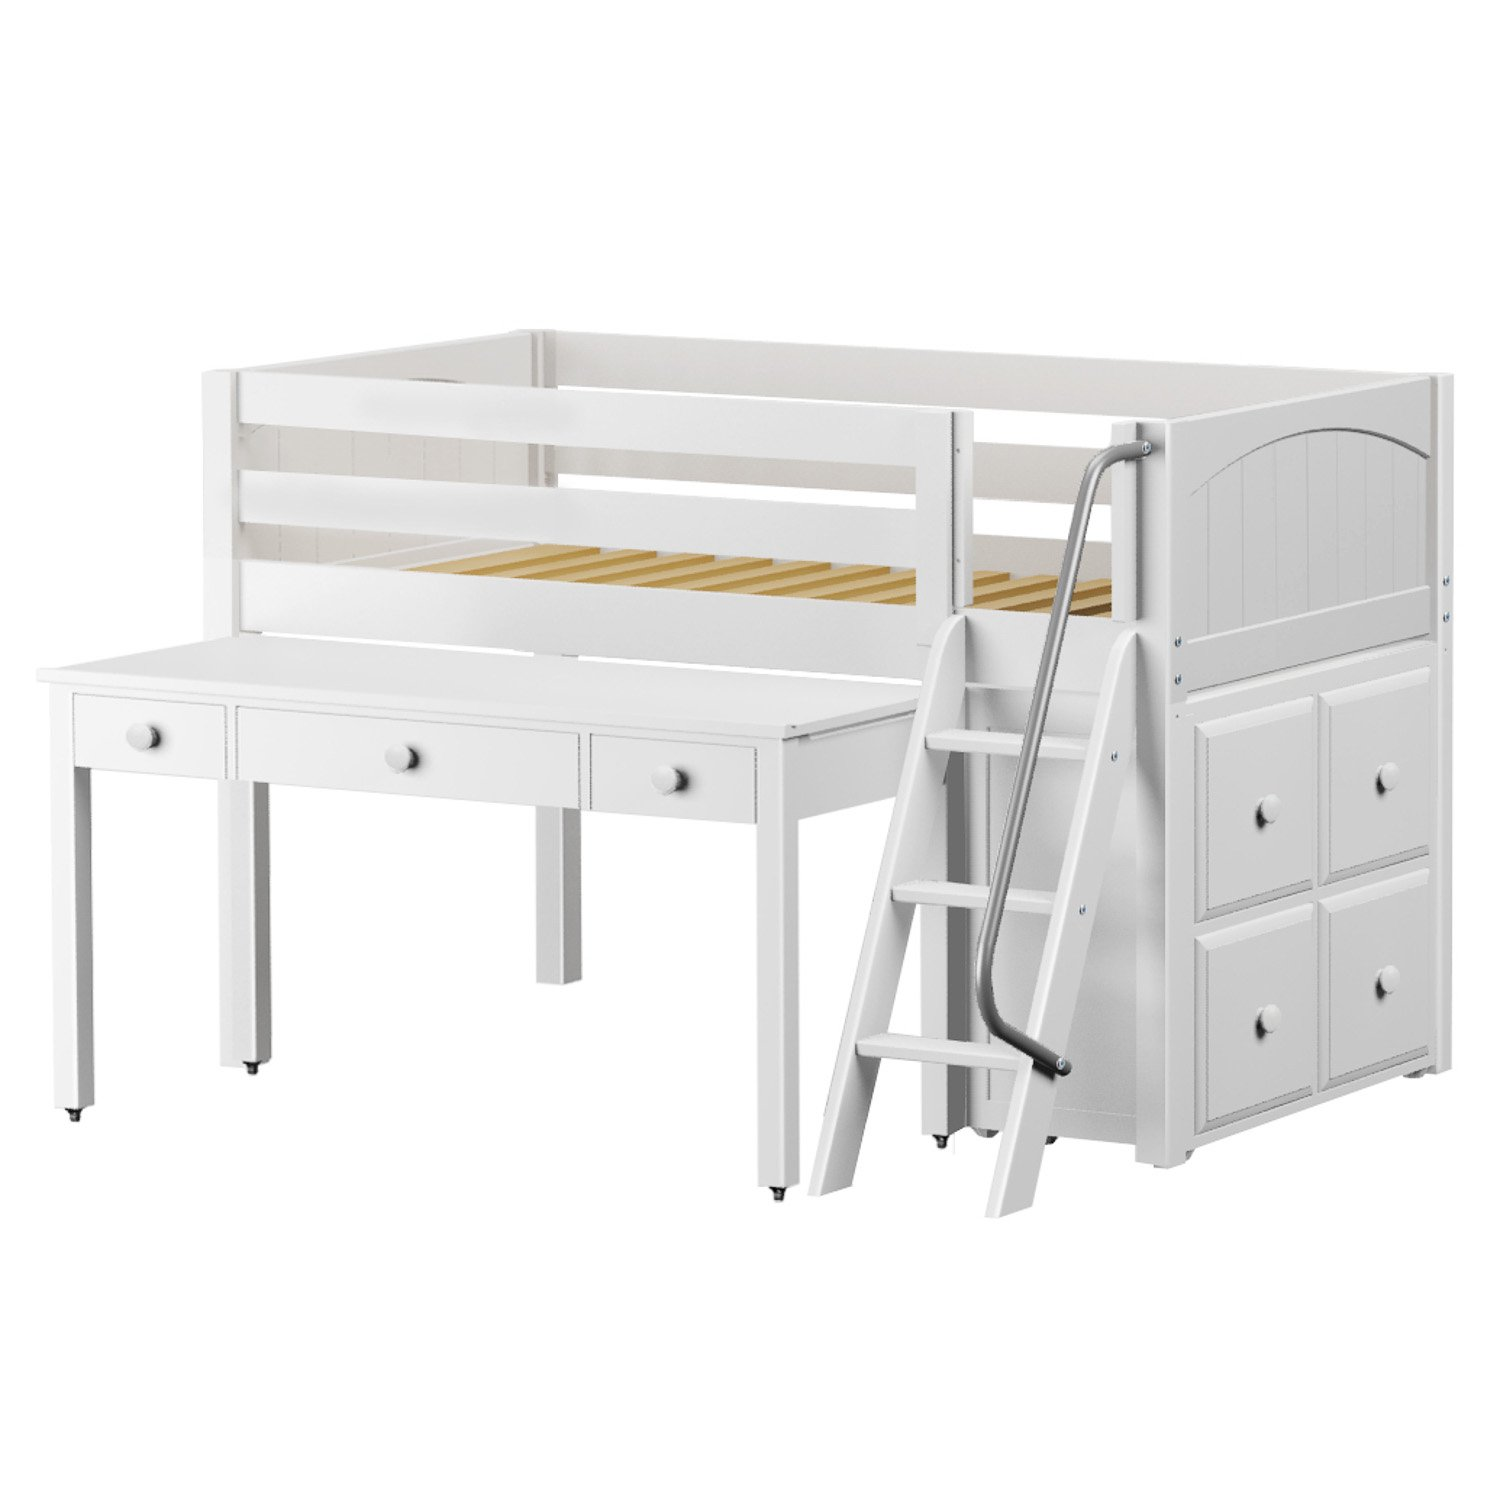 Maxtrix Solid Hardwood Twin-Size Low Loft Bed with Ladder Entry, Cube Dresser and Long Tilt Desk, White Finish